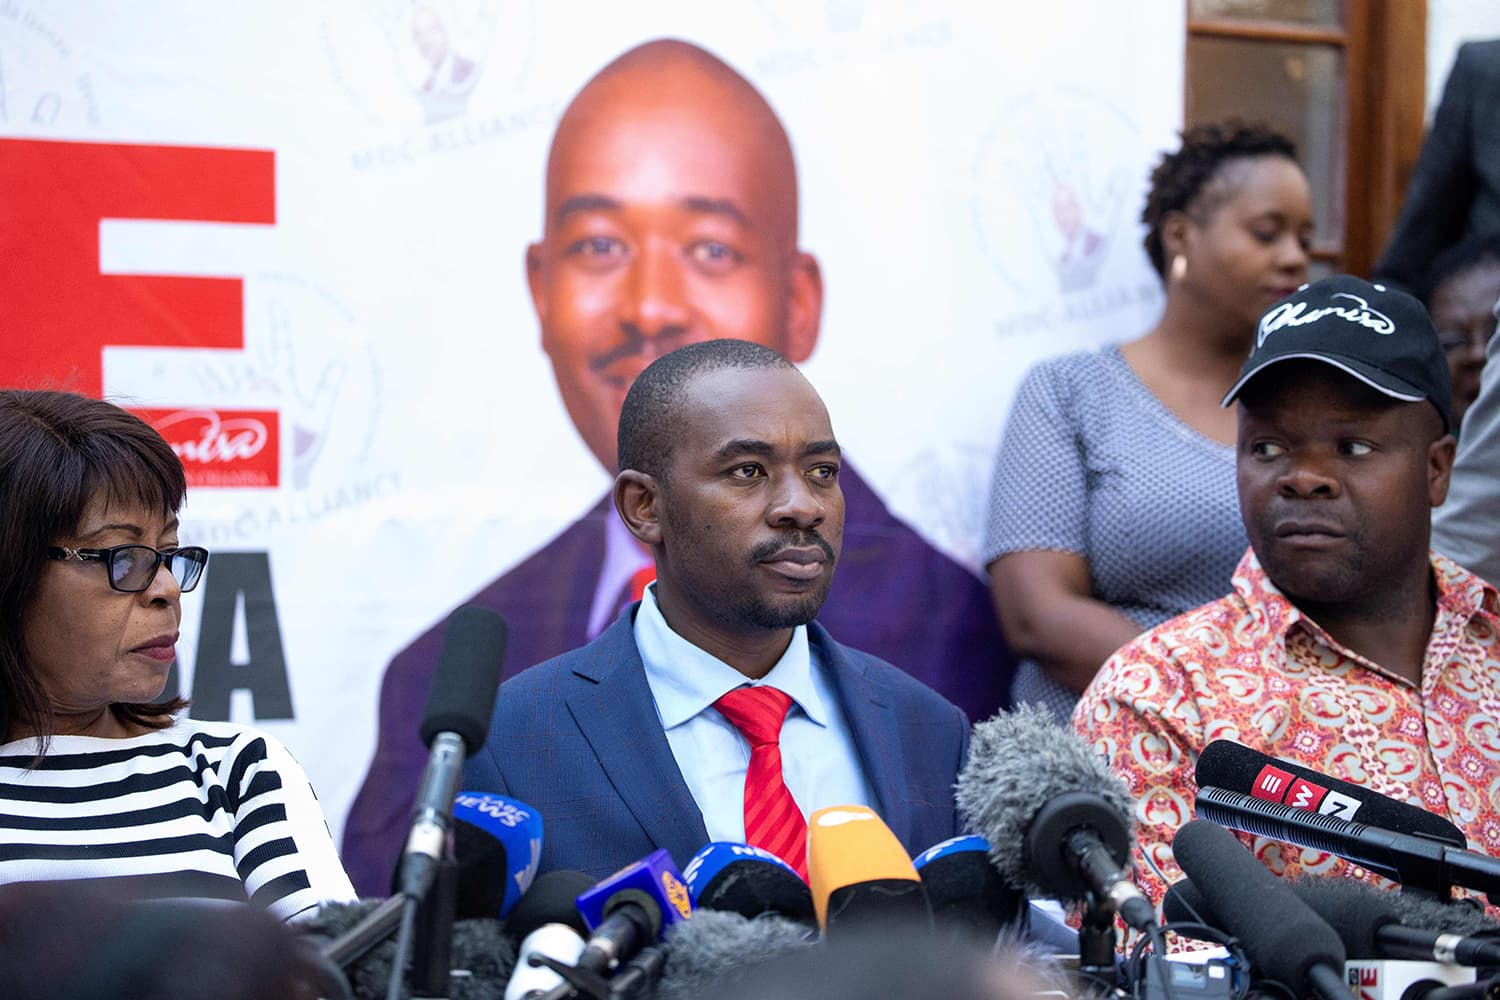 Zimbabwe's MDC leader Nelson Chamisa (C) addresses a press conference at The Bronte Hotel in Harare on August 3, 2018. —AFP